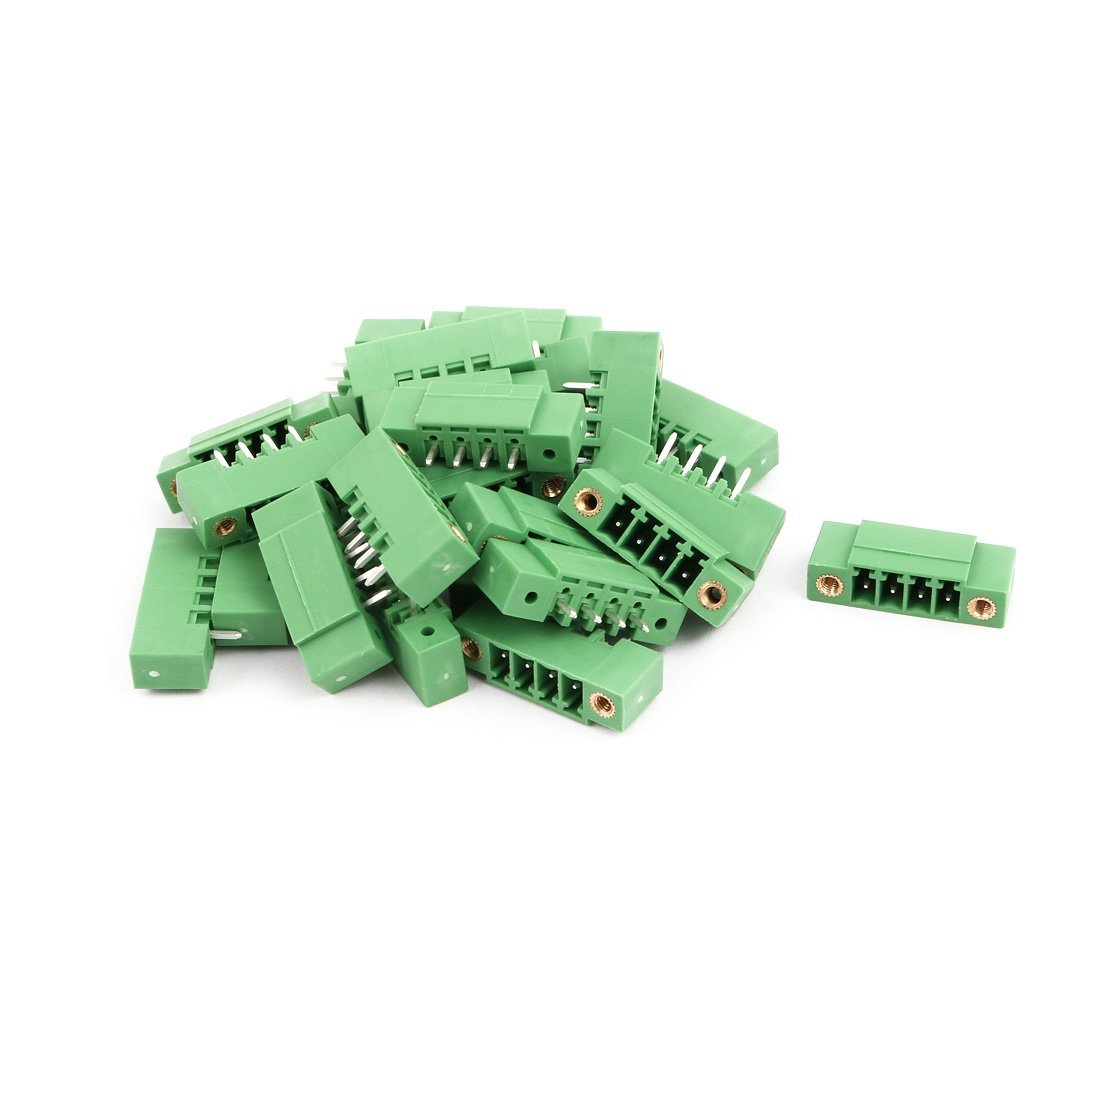 uxcell 25Pcs AC 300V 8A 3.5mm Pitch 4P Terminal Block Wire Connection for PCB Mounting Green